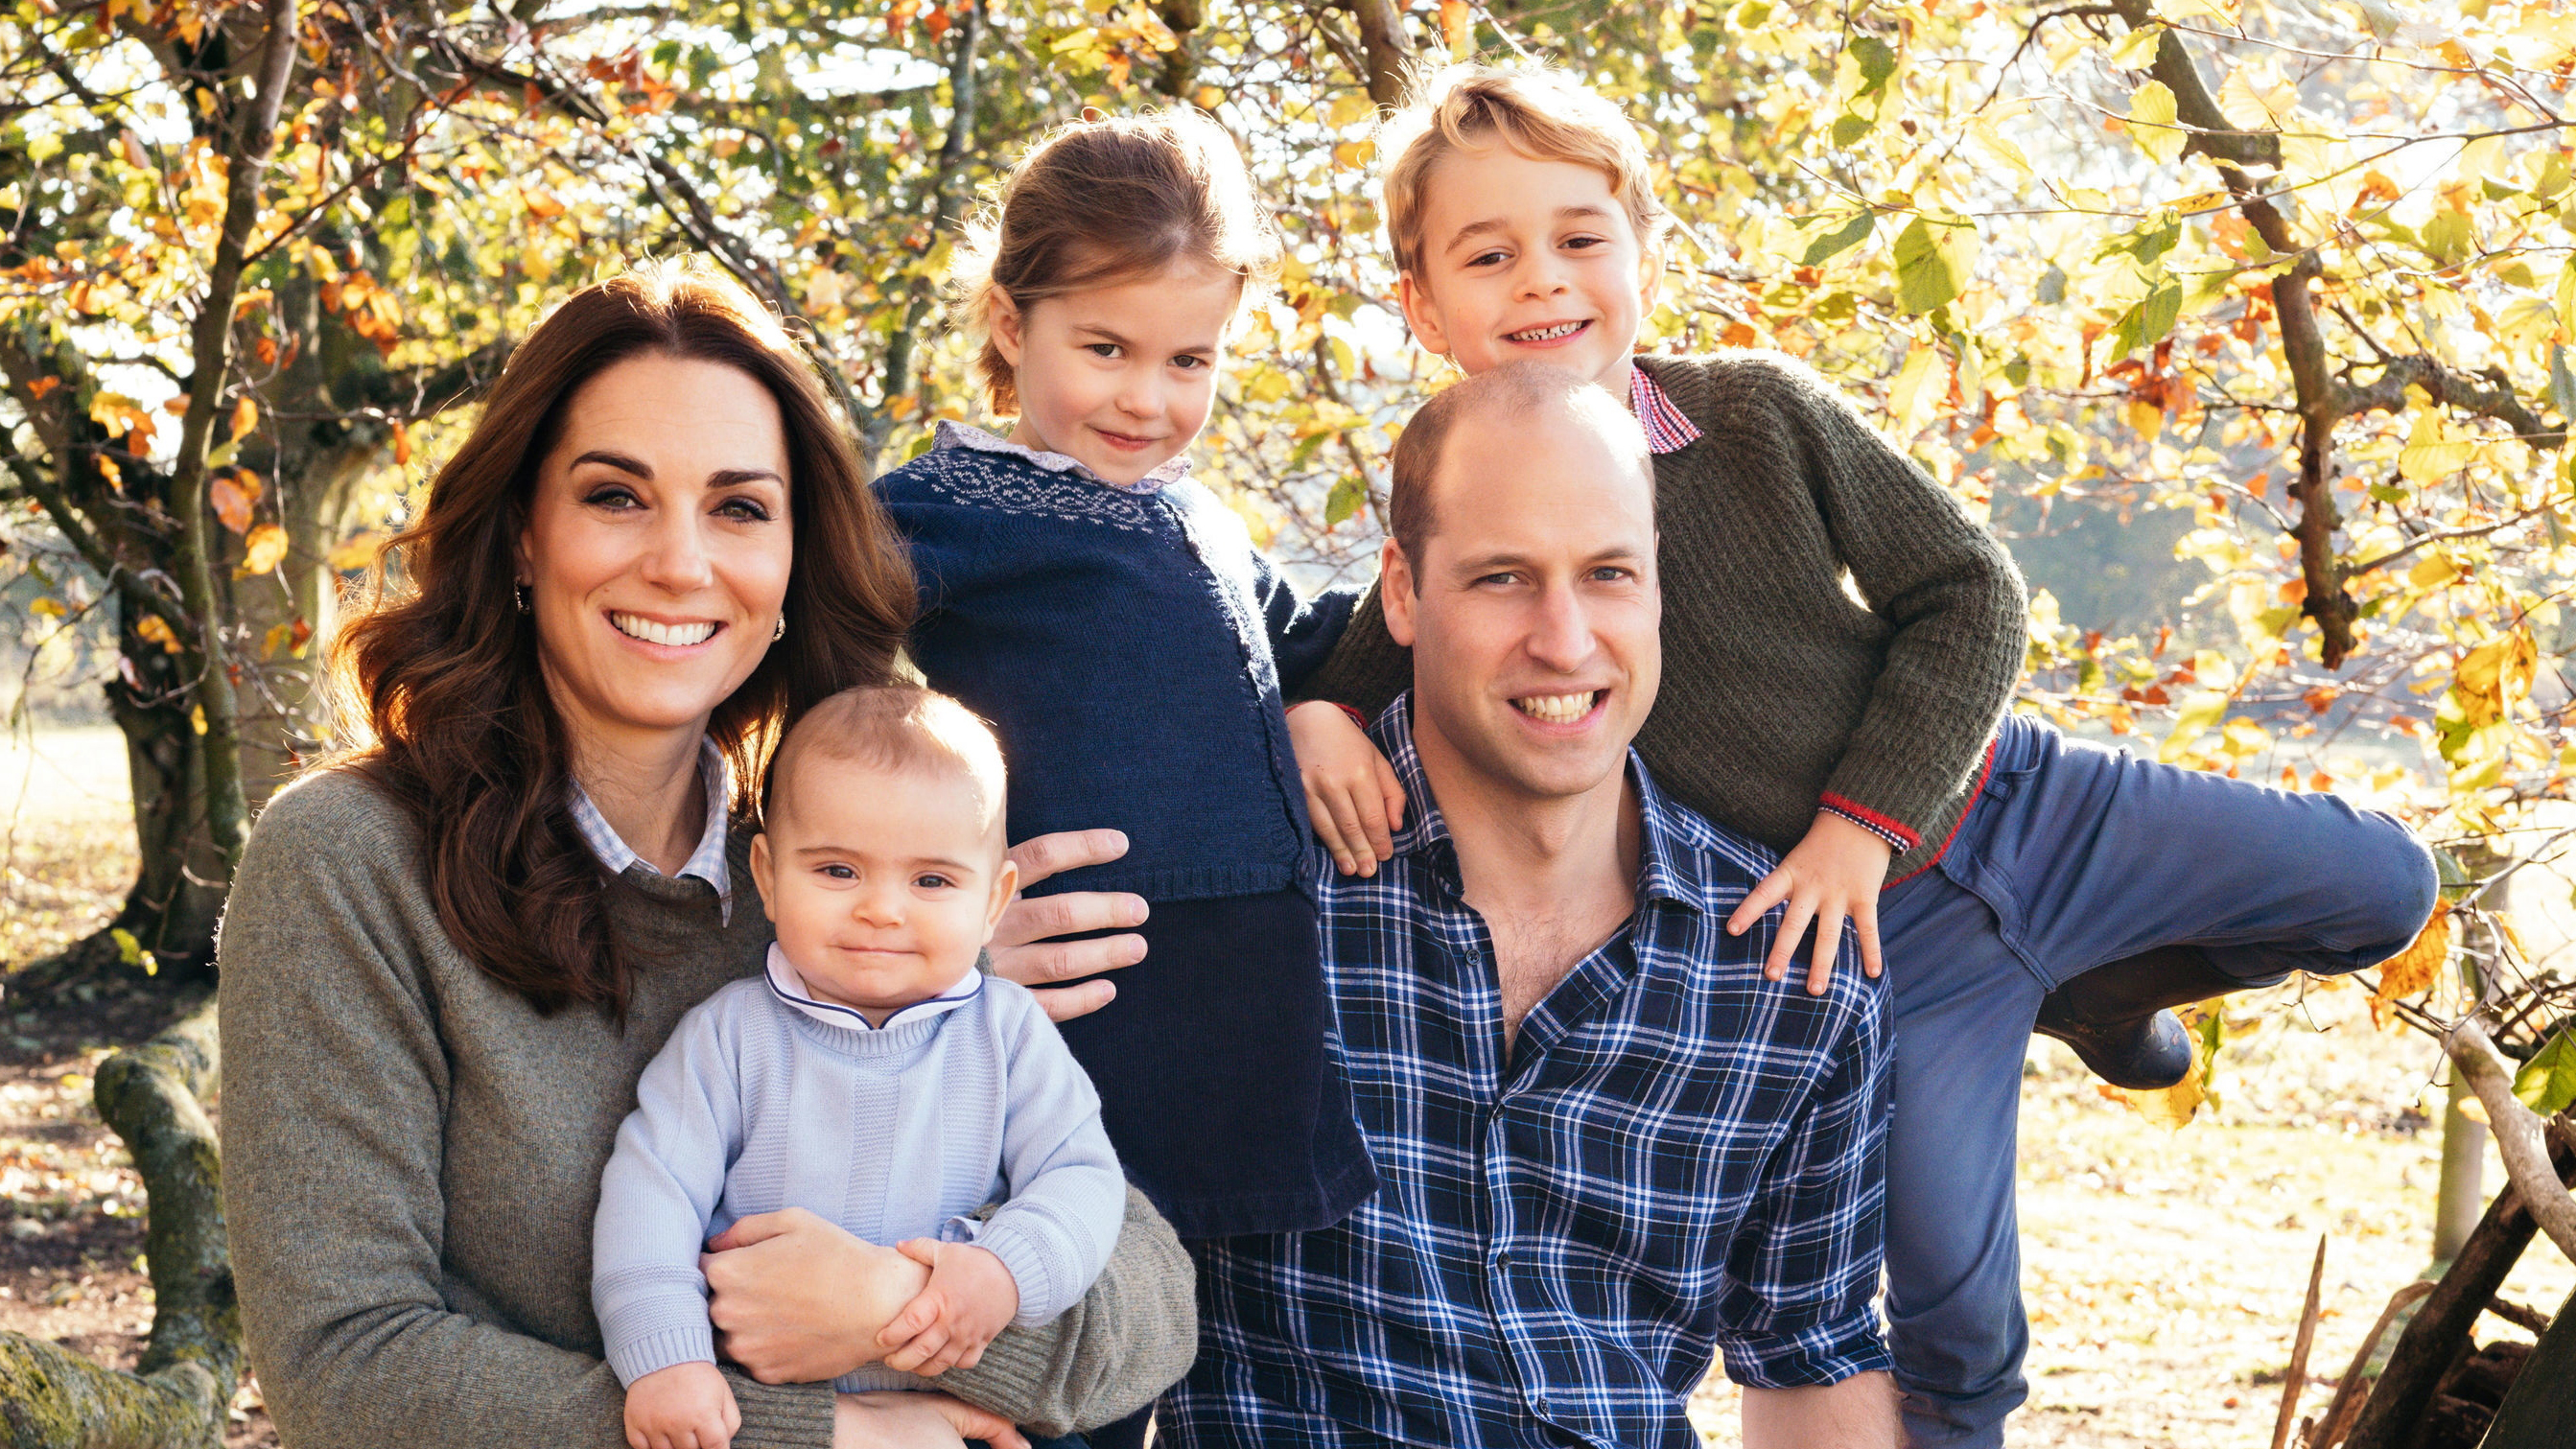 Princess Charlotte compared to Princess Diana in Cambridge family Christmas card - 9Honey